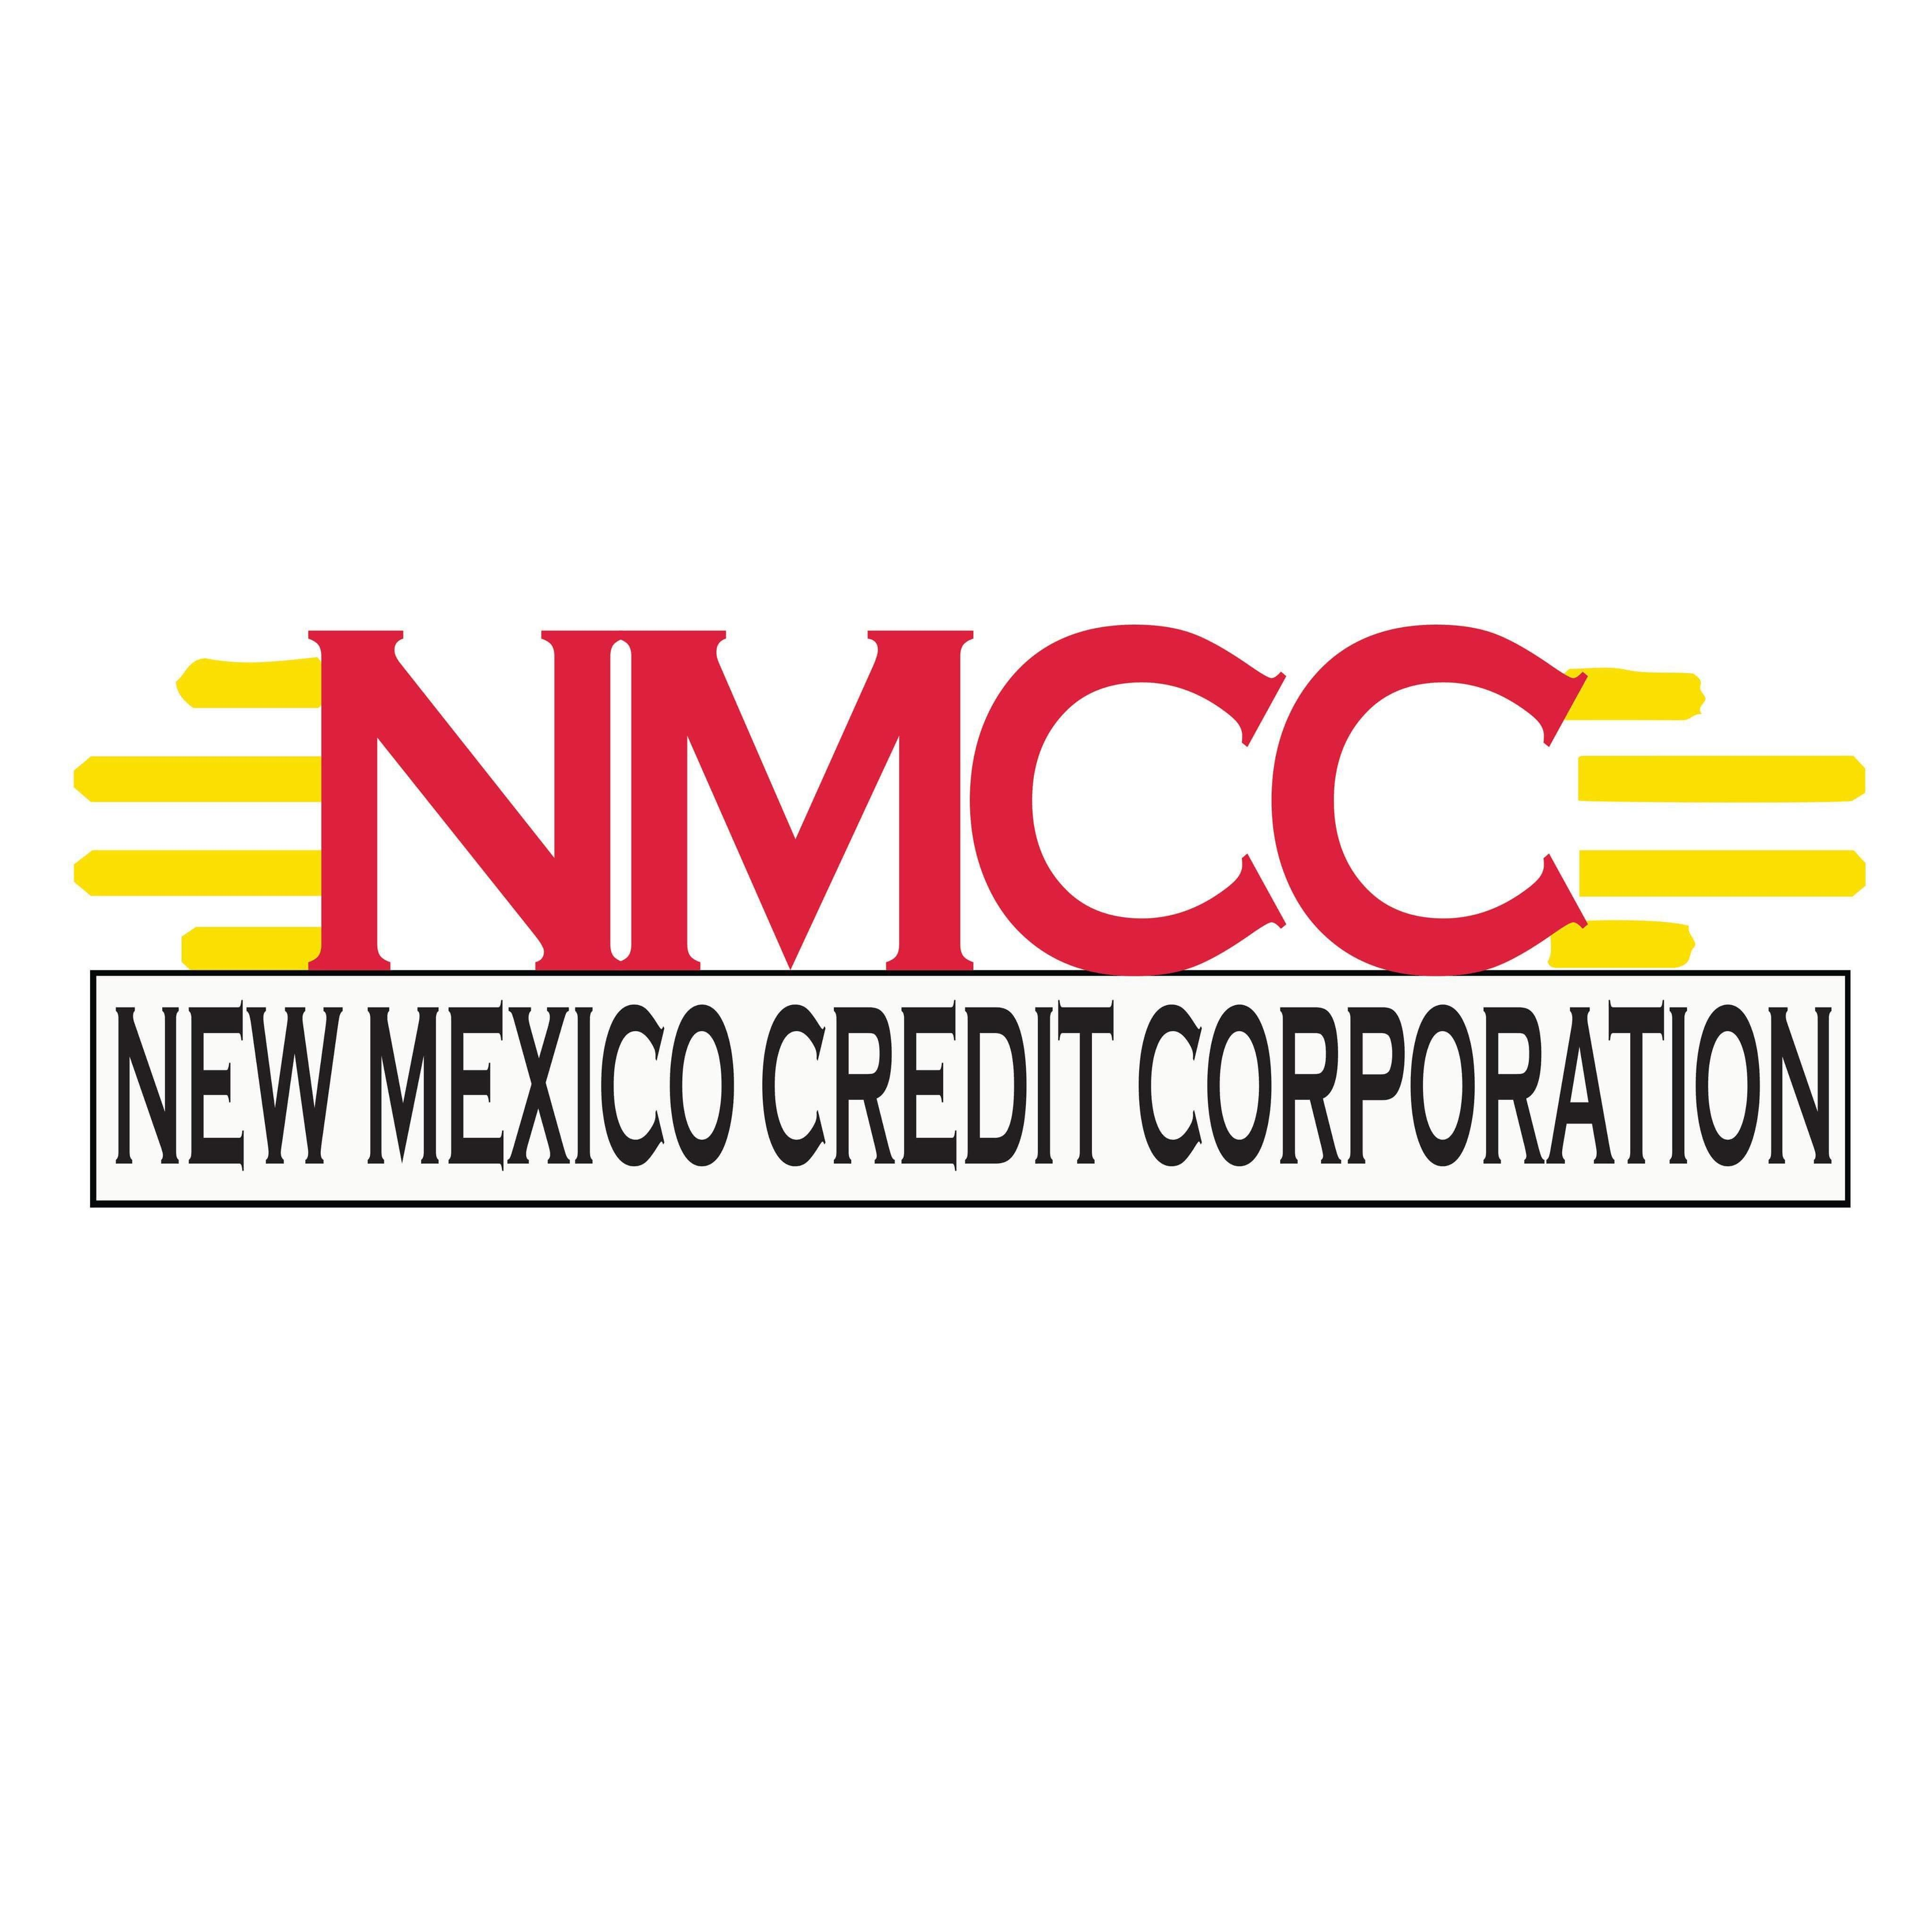 New Mexico Credit Corporation